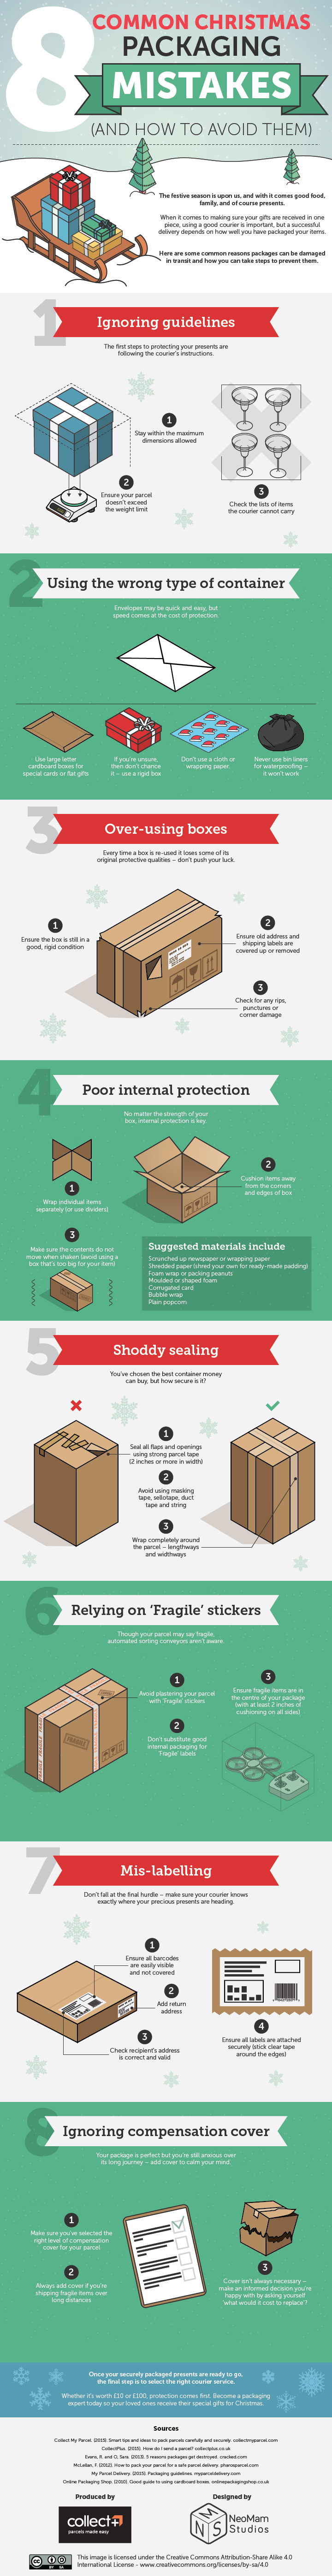 Packaging mistakes christmas edition 3